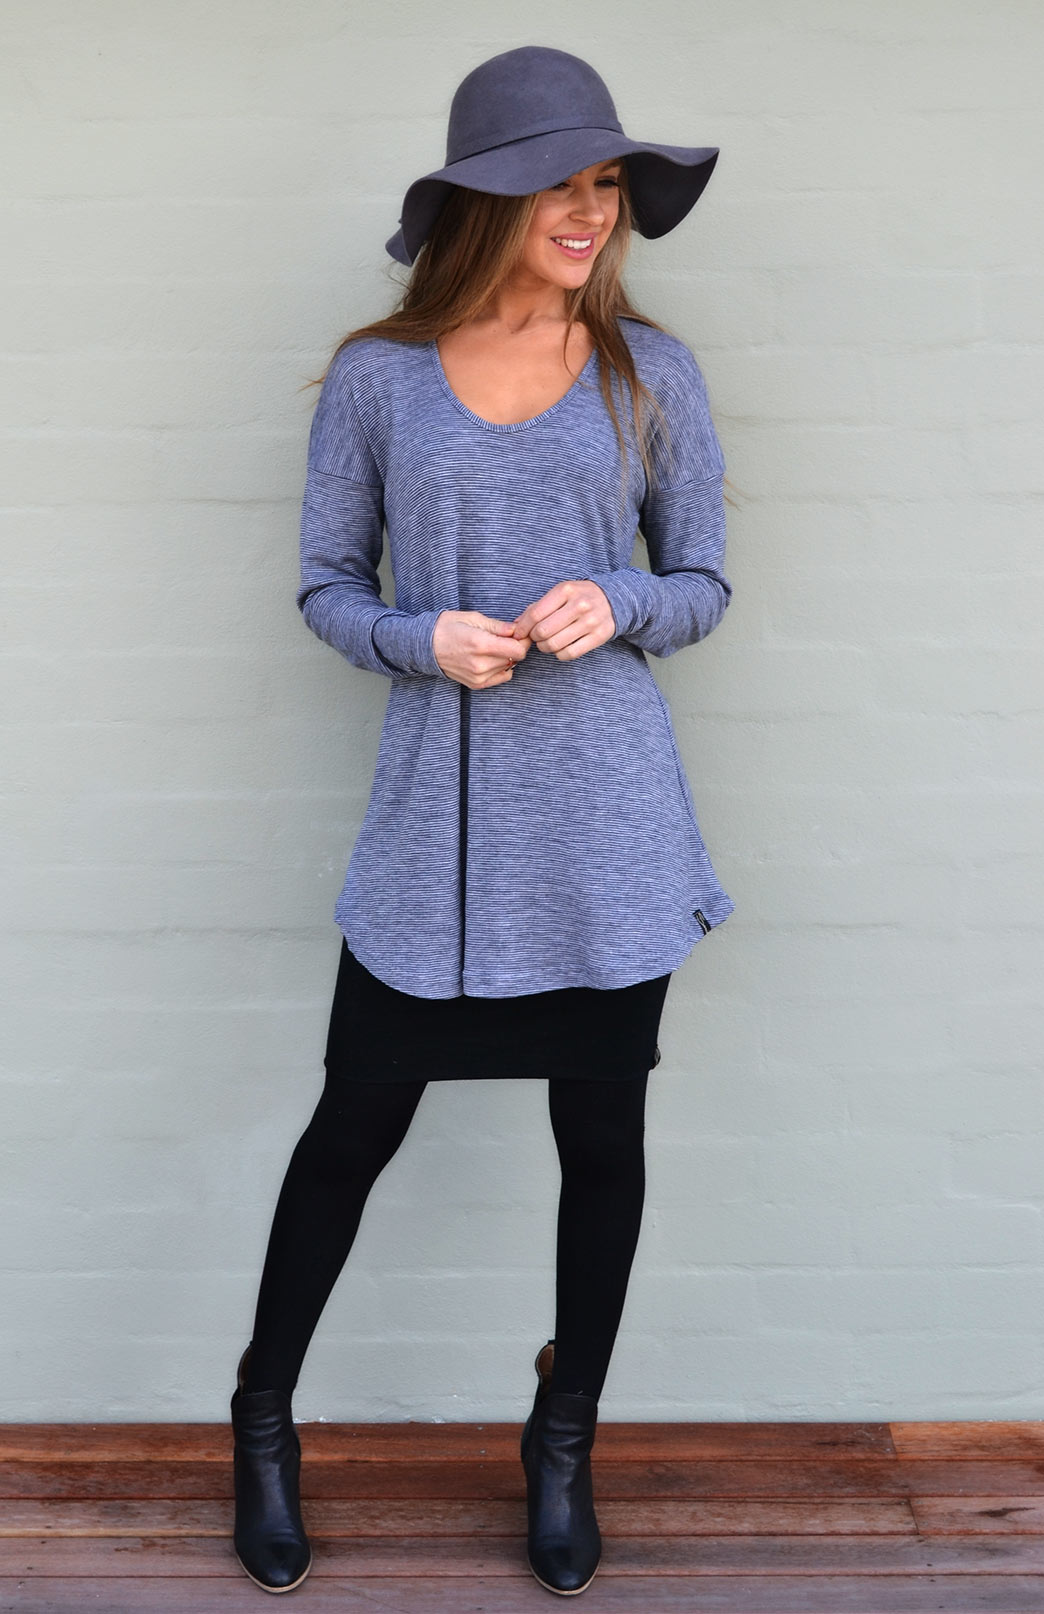 Wave Top - Women's Grey Pinstripe Relaxed Wool Top with dropped shoulders - Smitten Merino Tasmania Australia